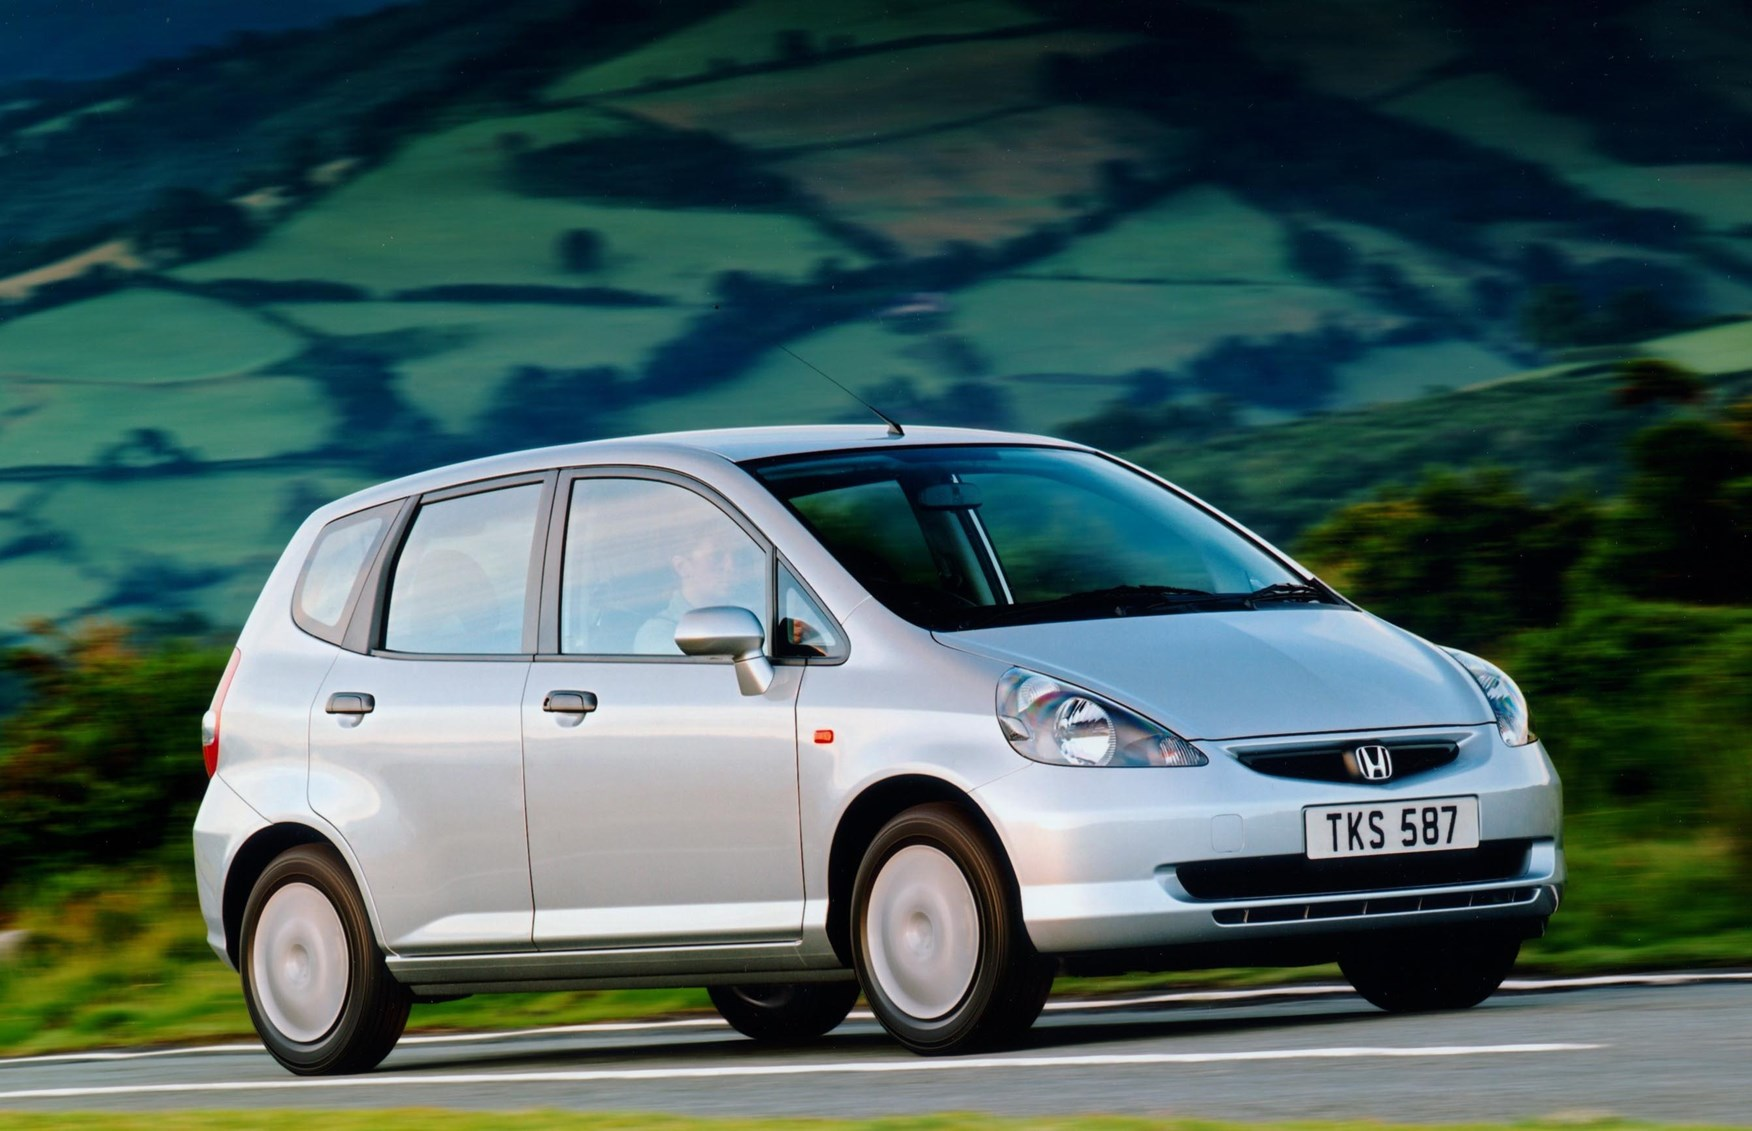 View all images of the Honda Jazz (02-08)